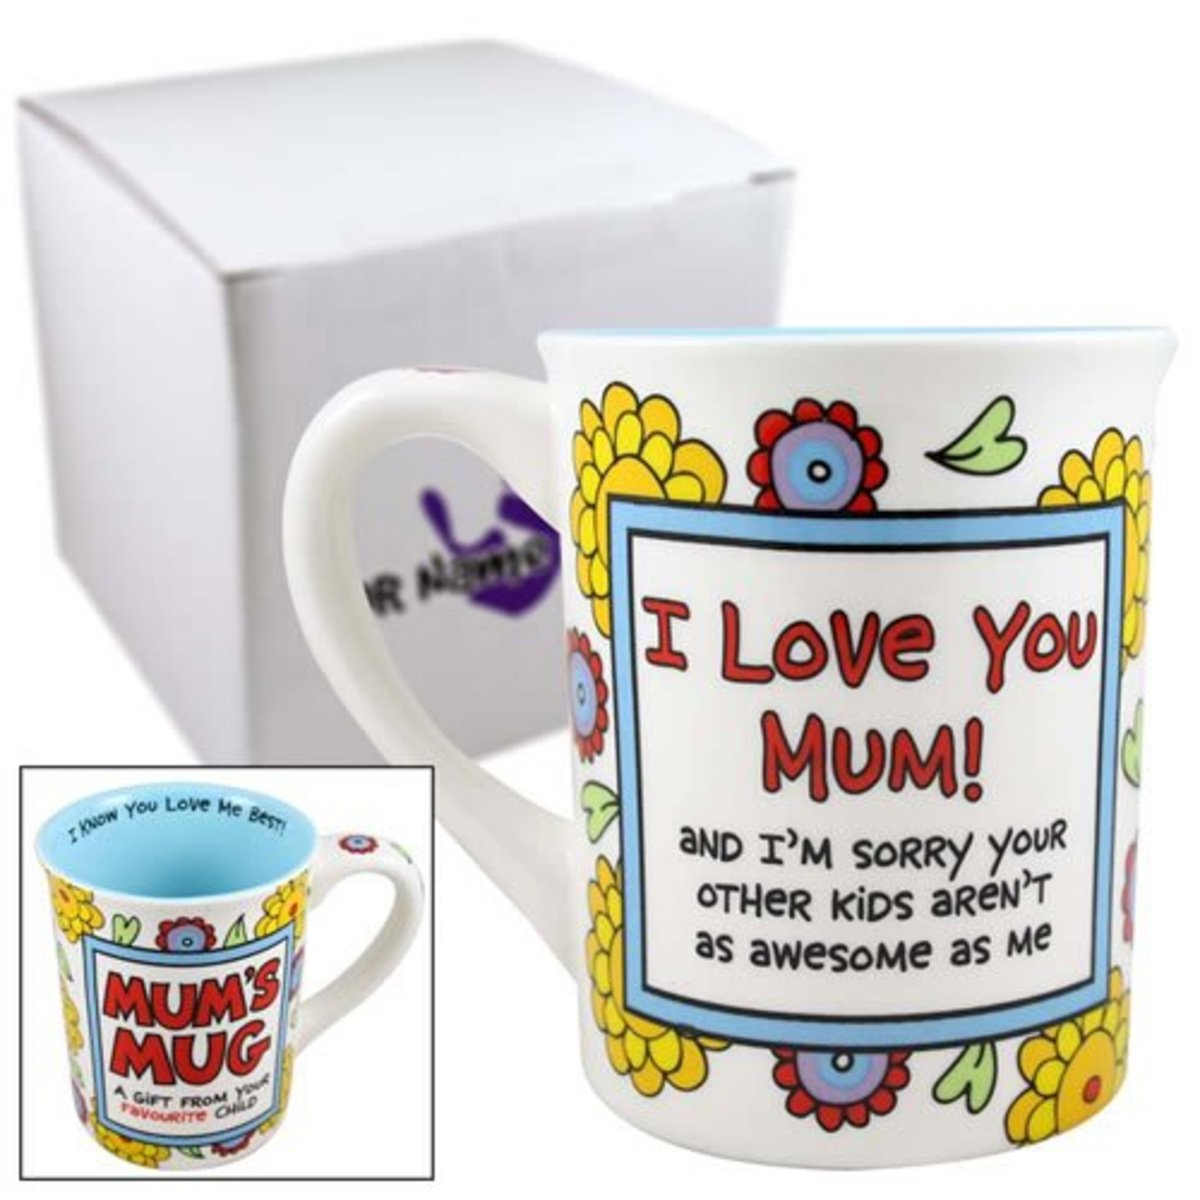 Great Joke on a Mug for Mothers with More Than One Child